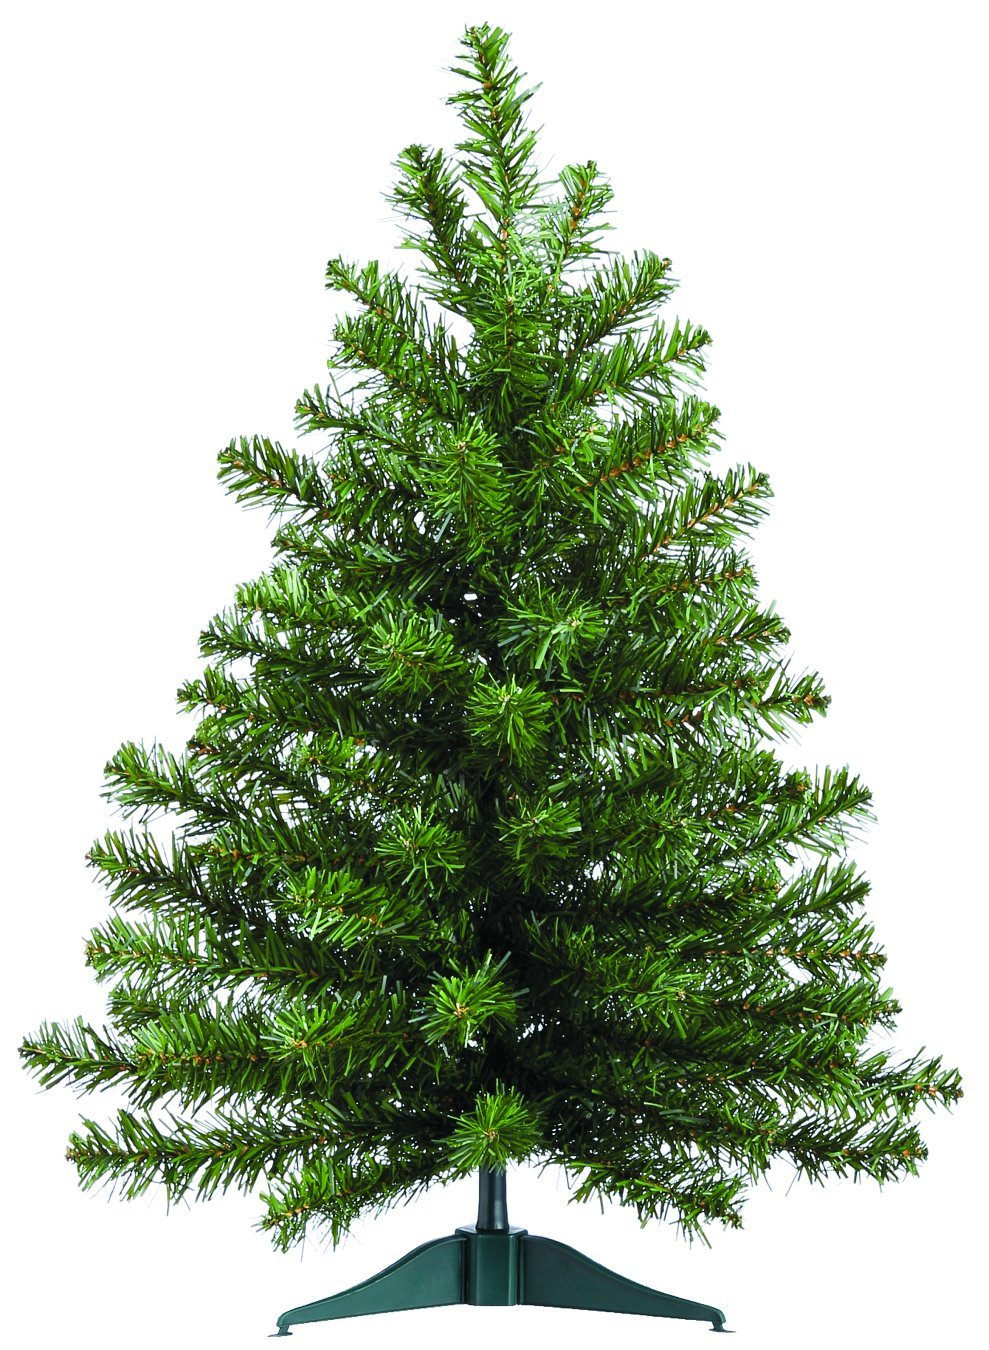 Balsam Christmas Trees.2 Foot High X 16 Inch Wide Artificial Christmas Balsam Pine Tree 75 Tips On Base